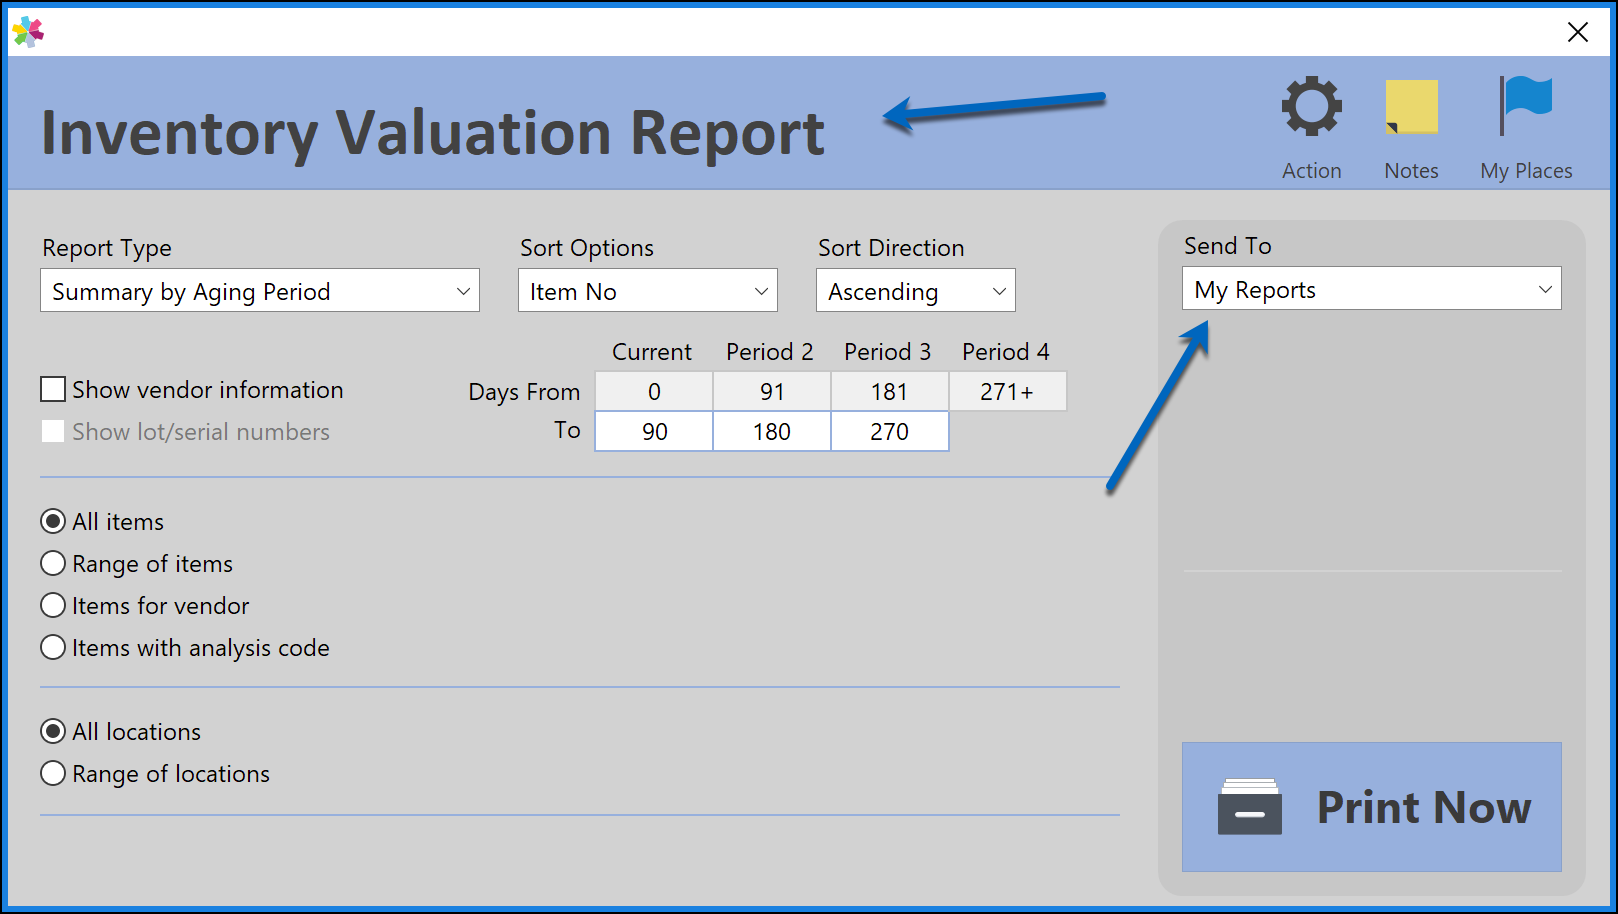 Sample Inventory Valuation to My Reports